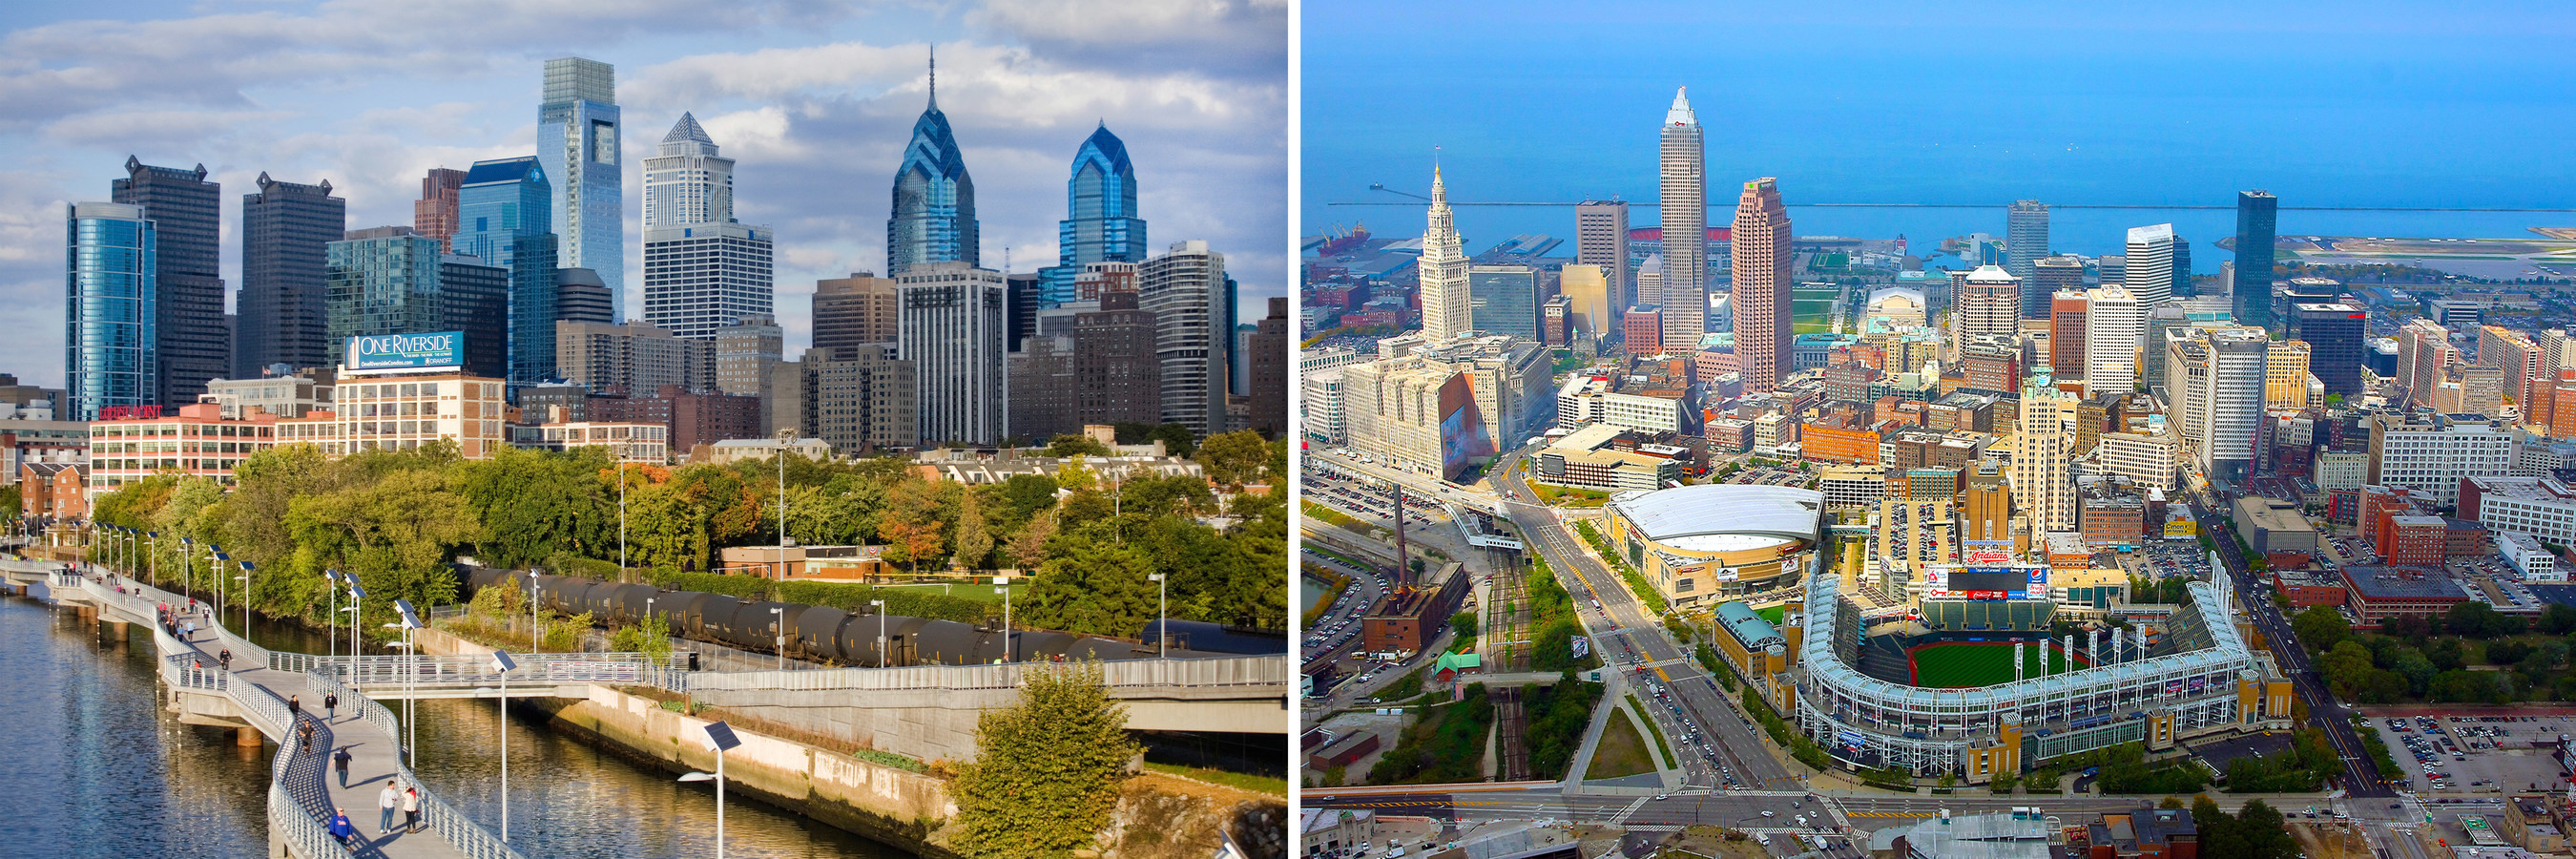 History repeats itself eight decades after Philadelphia (left) and Cleveland (right) both hosted national political conventions in the summer of 1936. This year, the Democratic National Convention will be held in the City of Brotherly Love July 25-28 while Cleveland will host the Republican National Convention July 18-21.  Credits: Photos by M. Edlow for VISIT PHILADELPHIA (left) and William Reiter for the City of Cleveland (right).